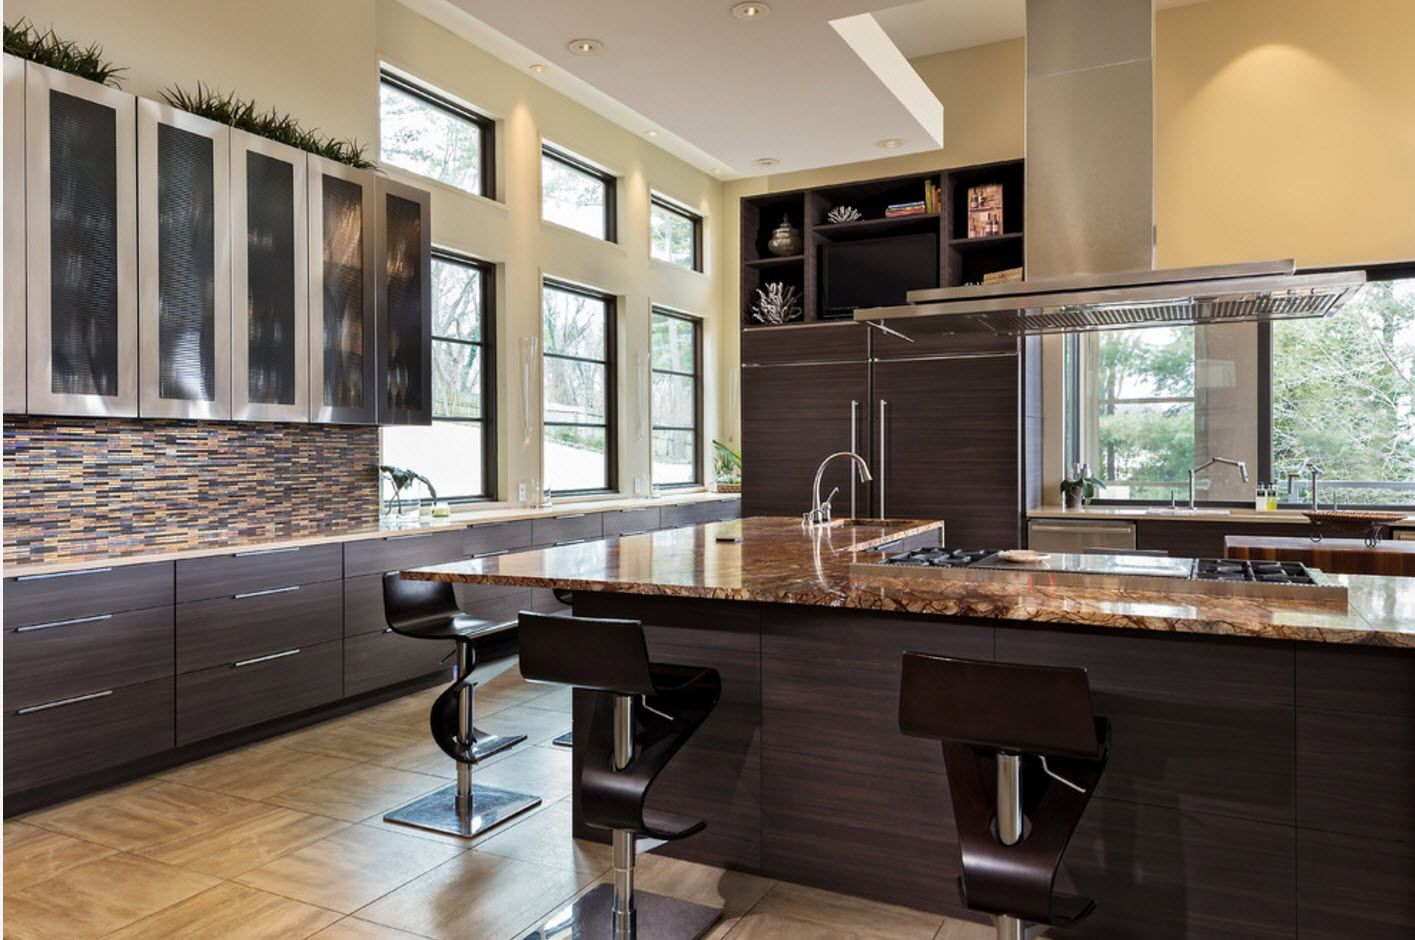 Nice dark wooden imitation at the kitchen island